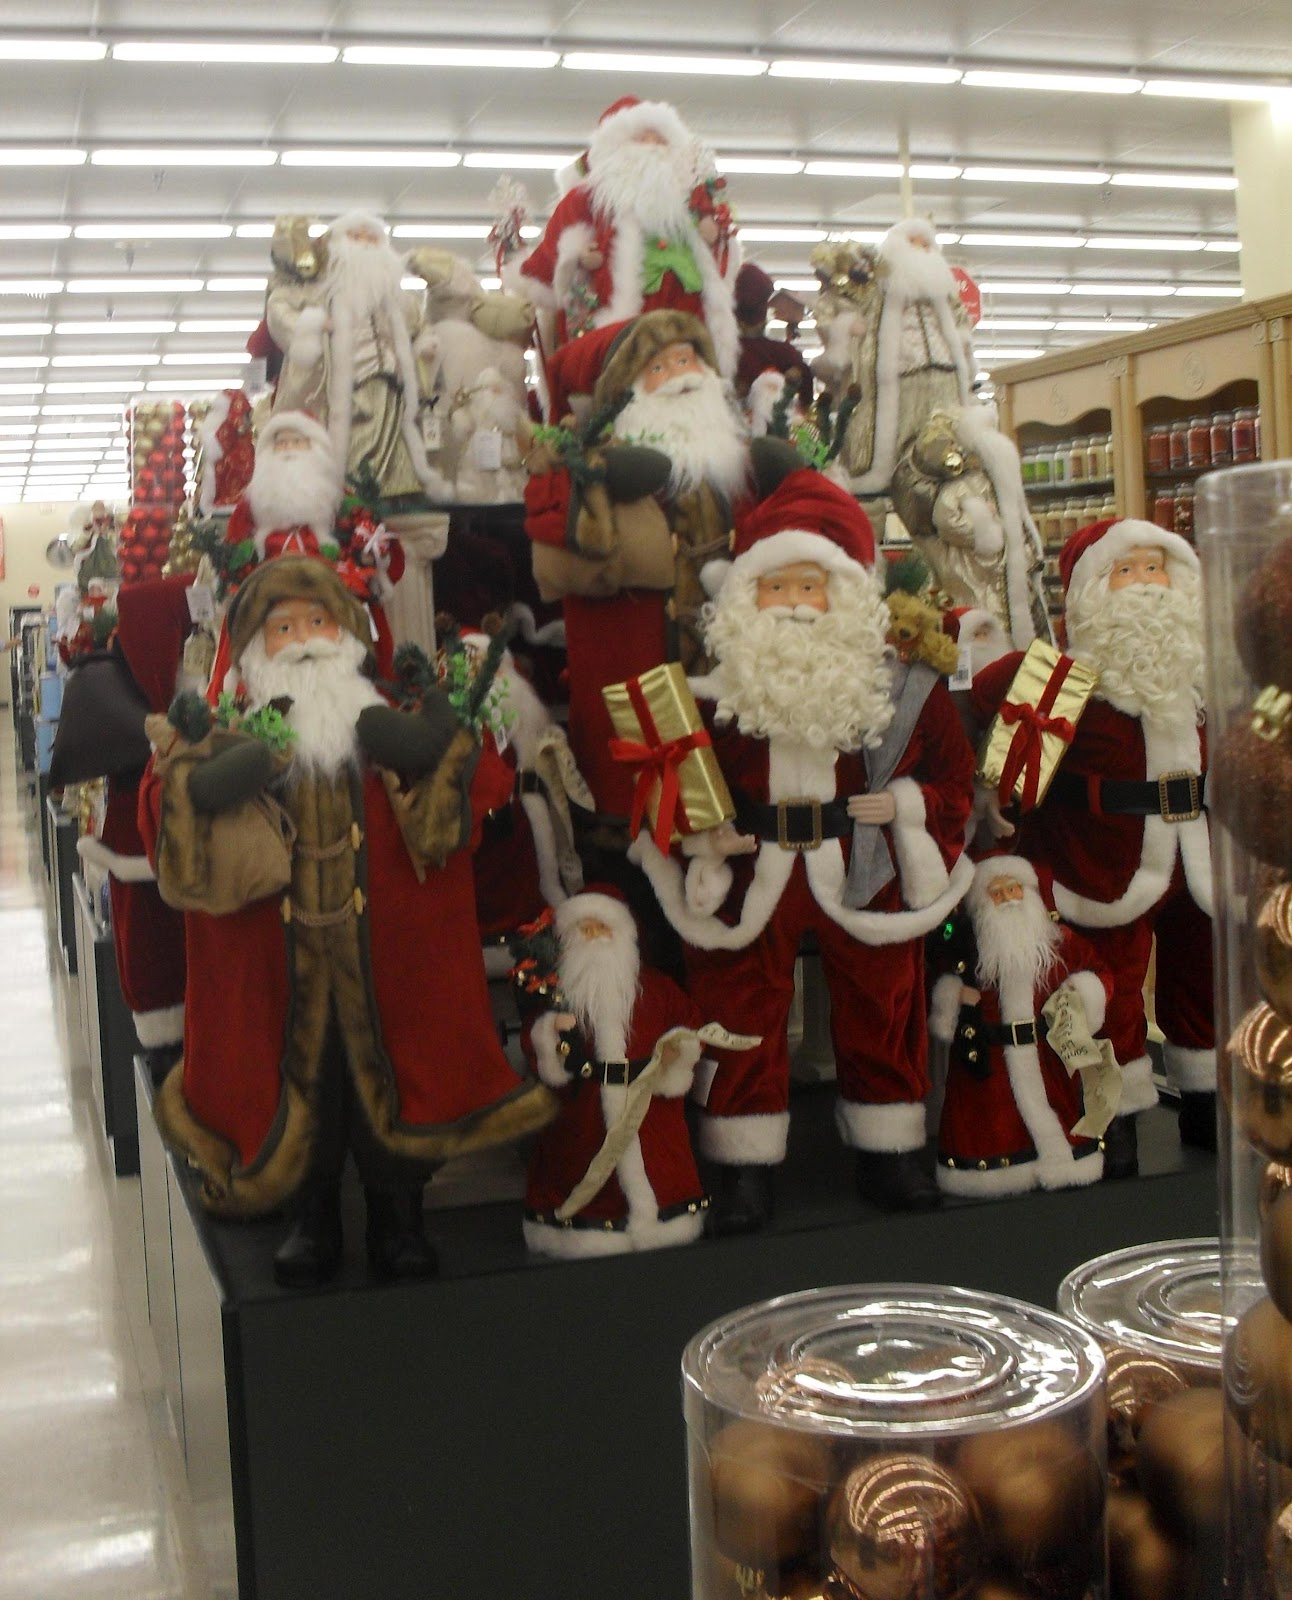 Christmas Decorations Hobby Lobby: At Home With Elaine: Monday's Trip To Hobby Lobby